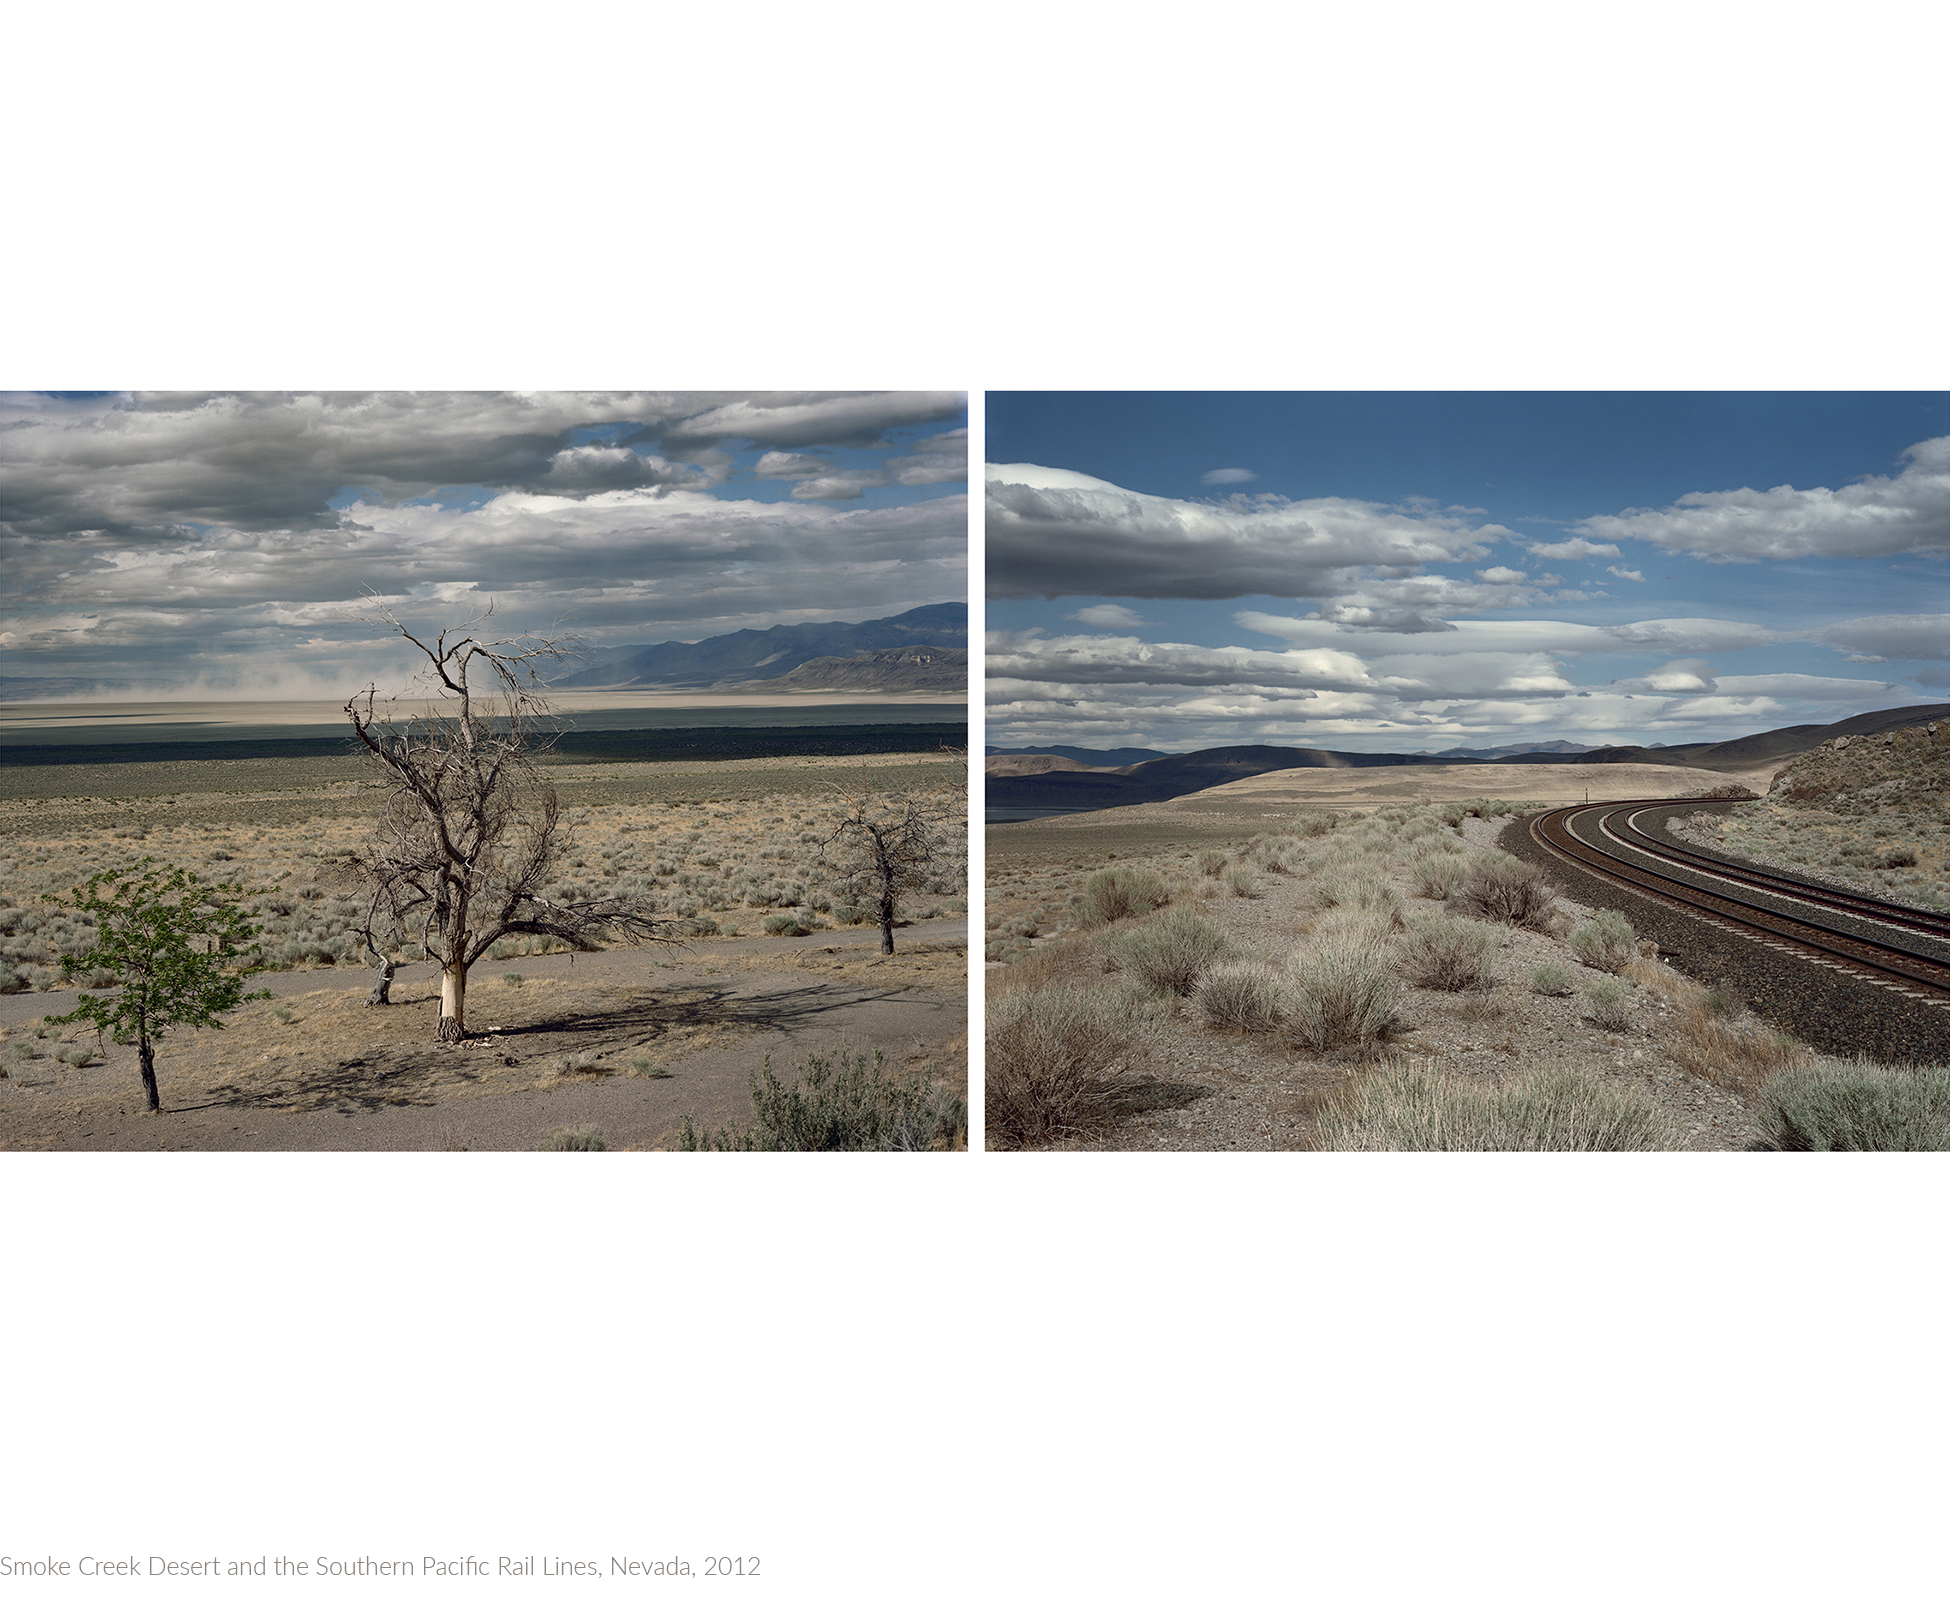 Smoke+Creek+Desert+and+the+Southern+Pacific+Rail+Lines,+Nevada,+2012titledsamesize.jpg